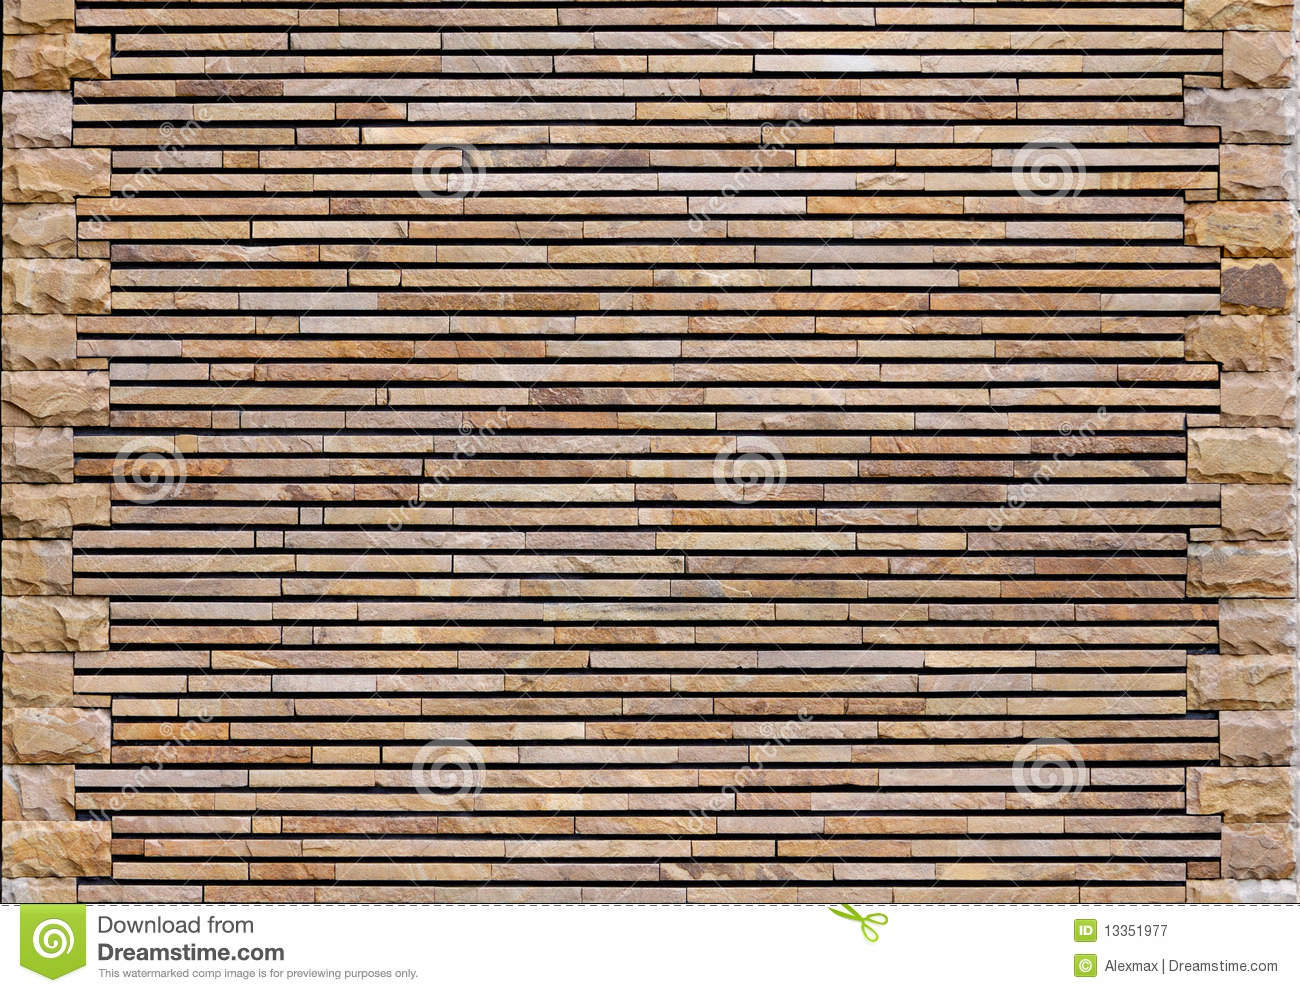 Decorative Stone Tile For Walls : Decorative stone wall texture royalty free stock